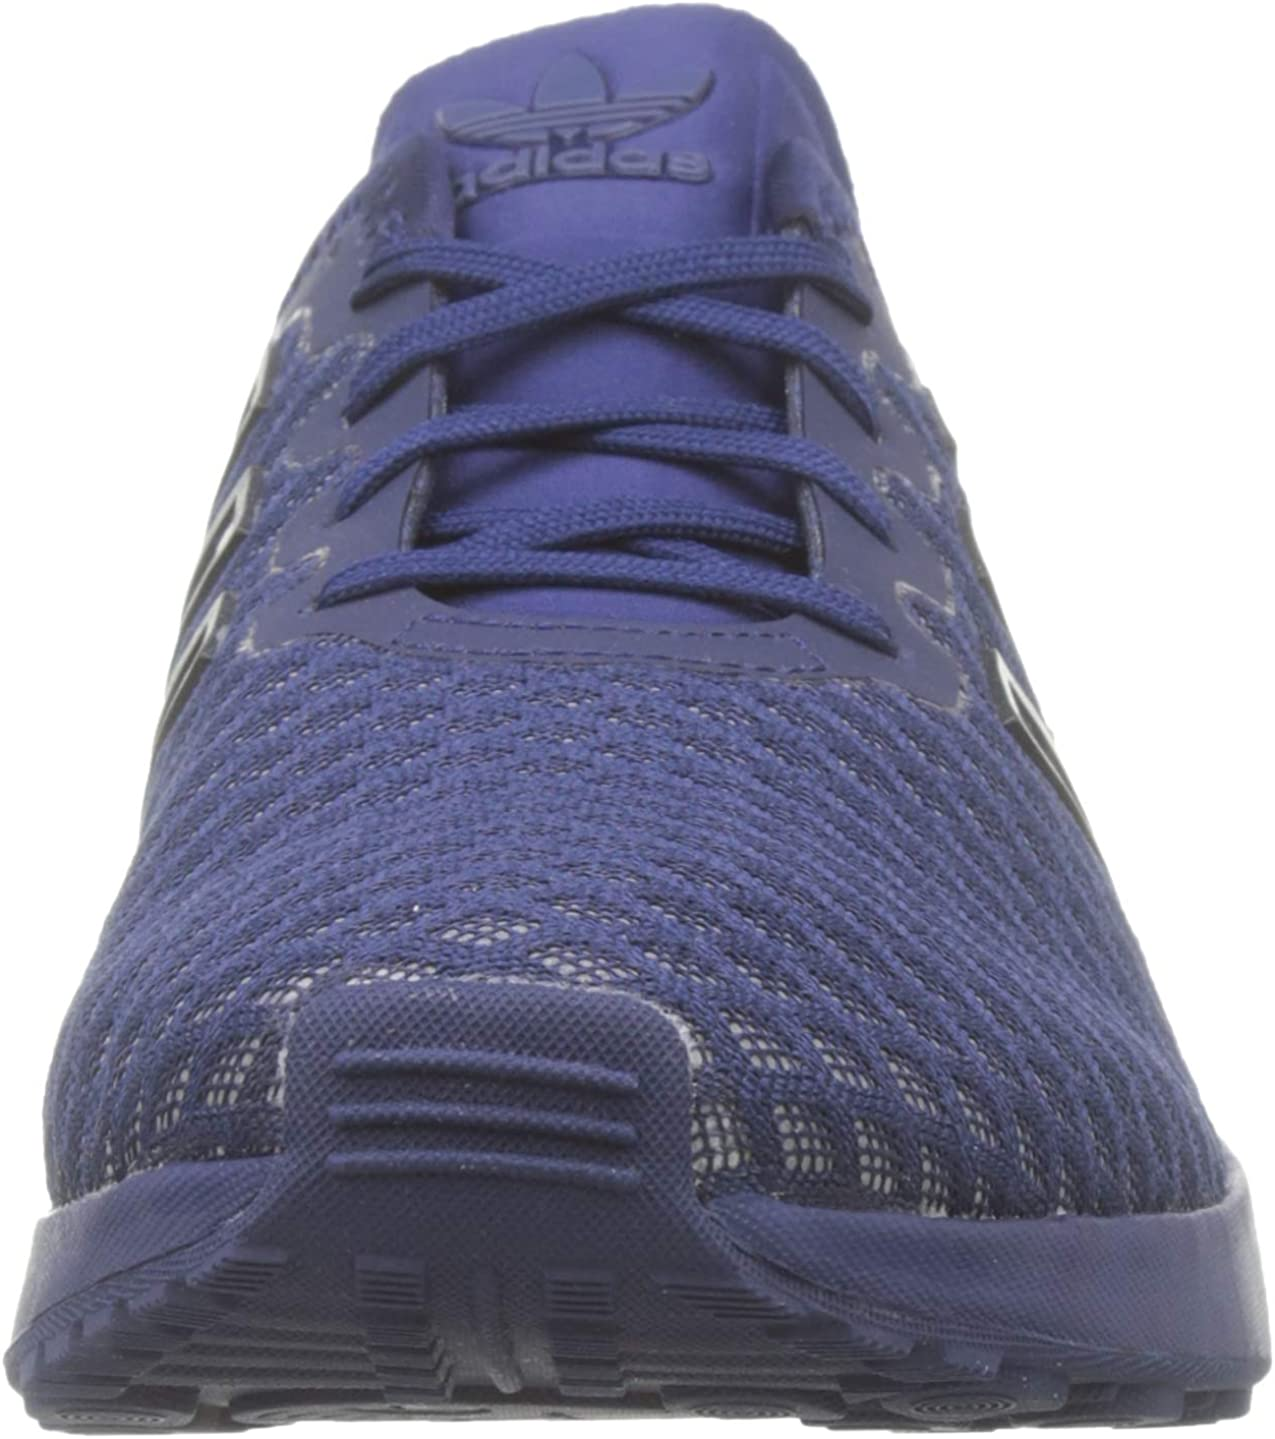 : adidas Men's Zx Flux Adv Aq6752 Trainers: Clothing